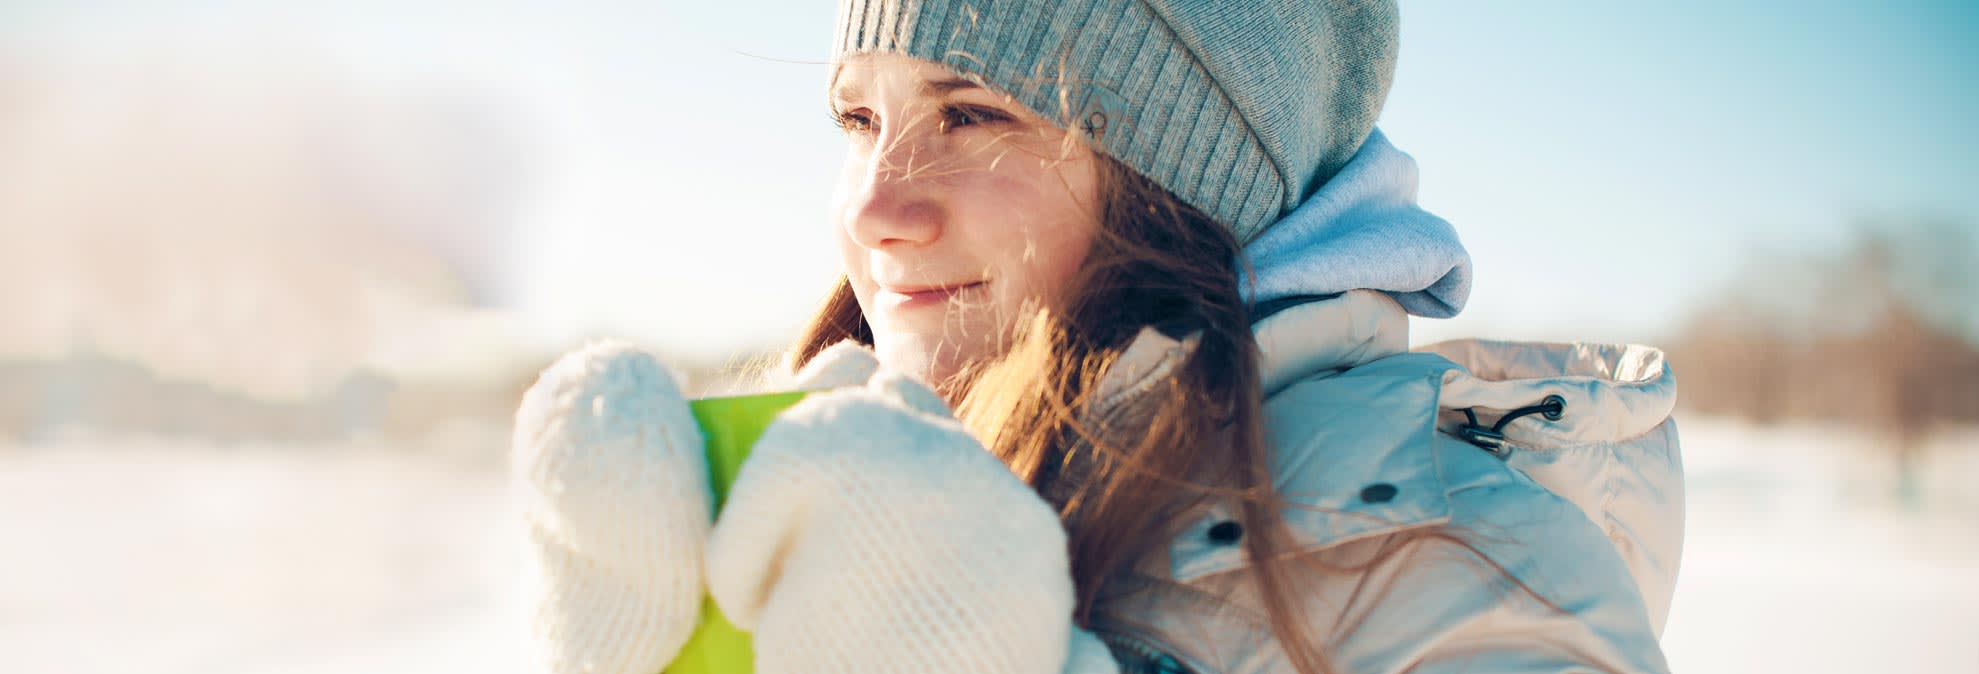 How To Stay Safe In Extreme Cold Consumer Reports